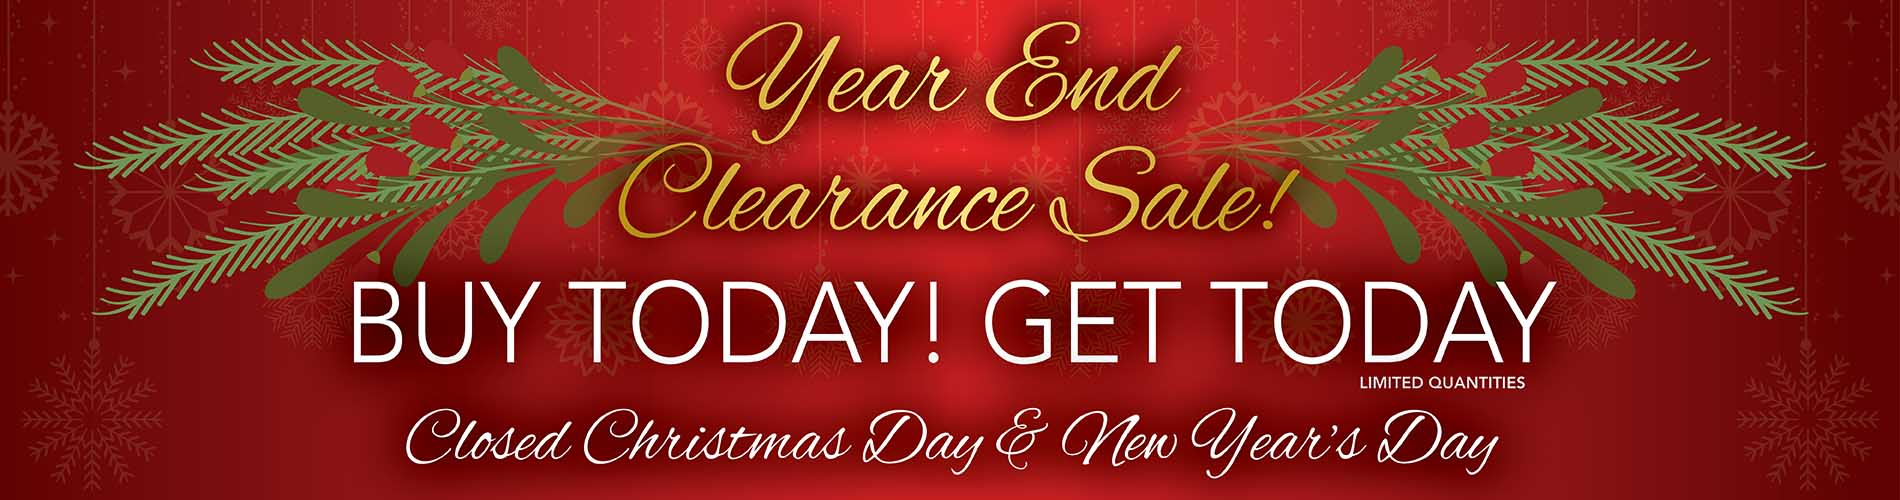 Year End Clearance Sale going on now at Neve's Floors To Go Furniture & Mattress Gallery! Buy today, get today! (limited quantities) Closed Christmas Day & New Year's Day.